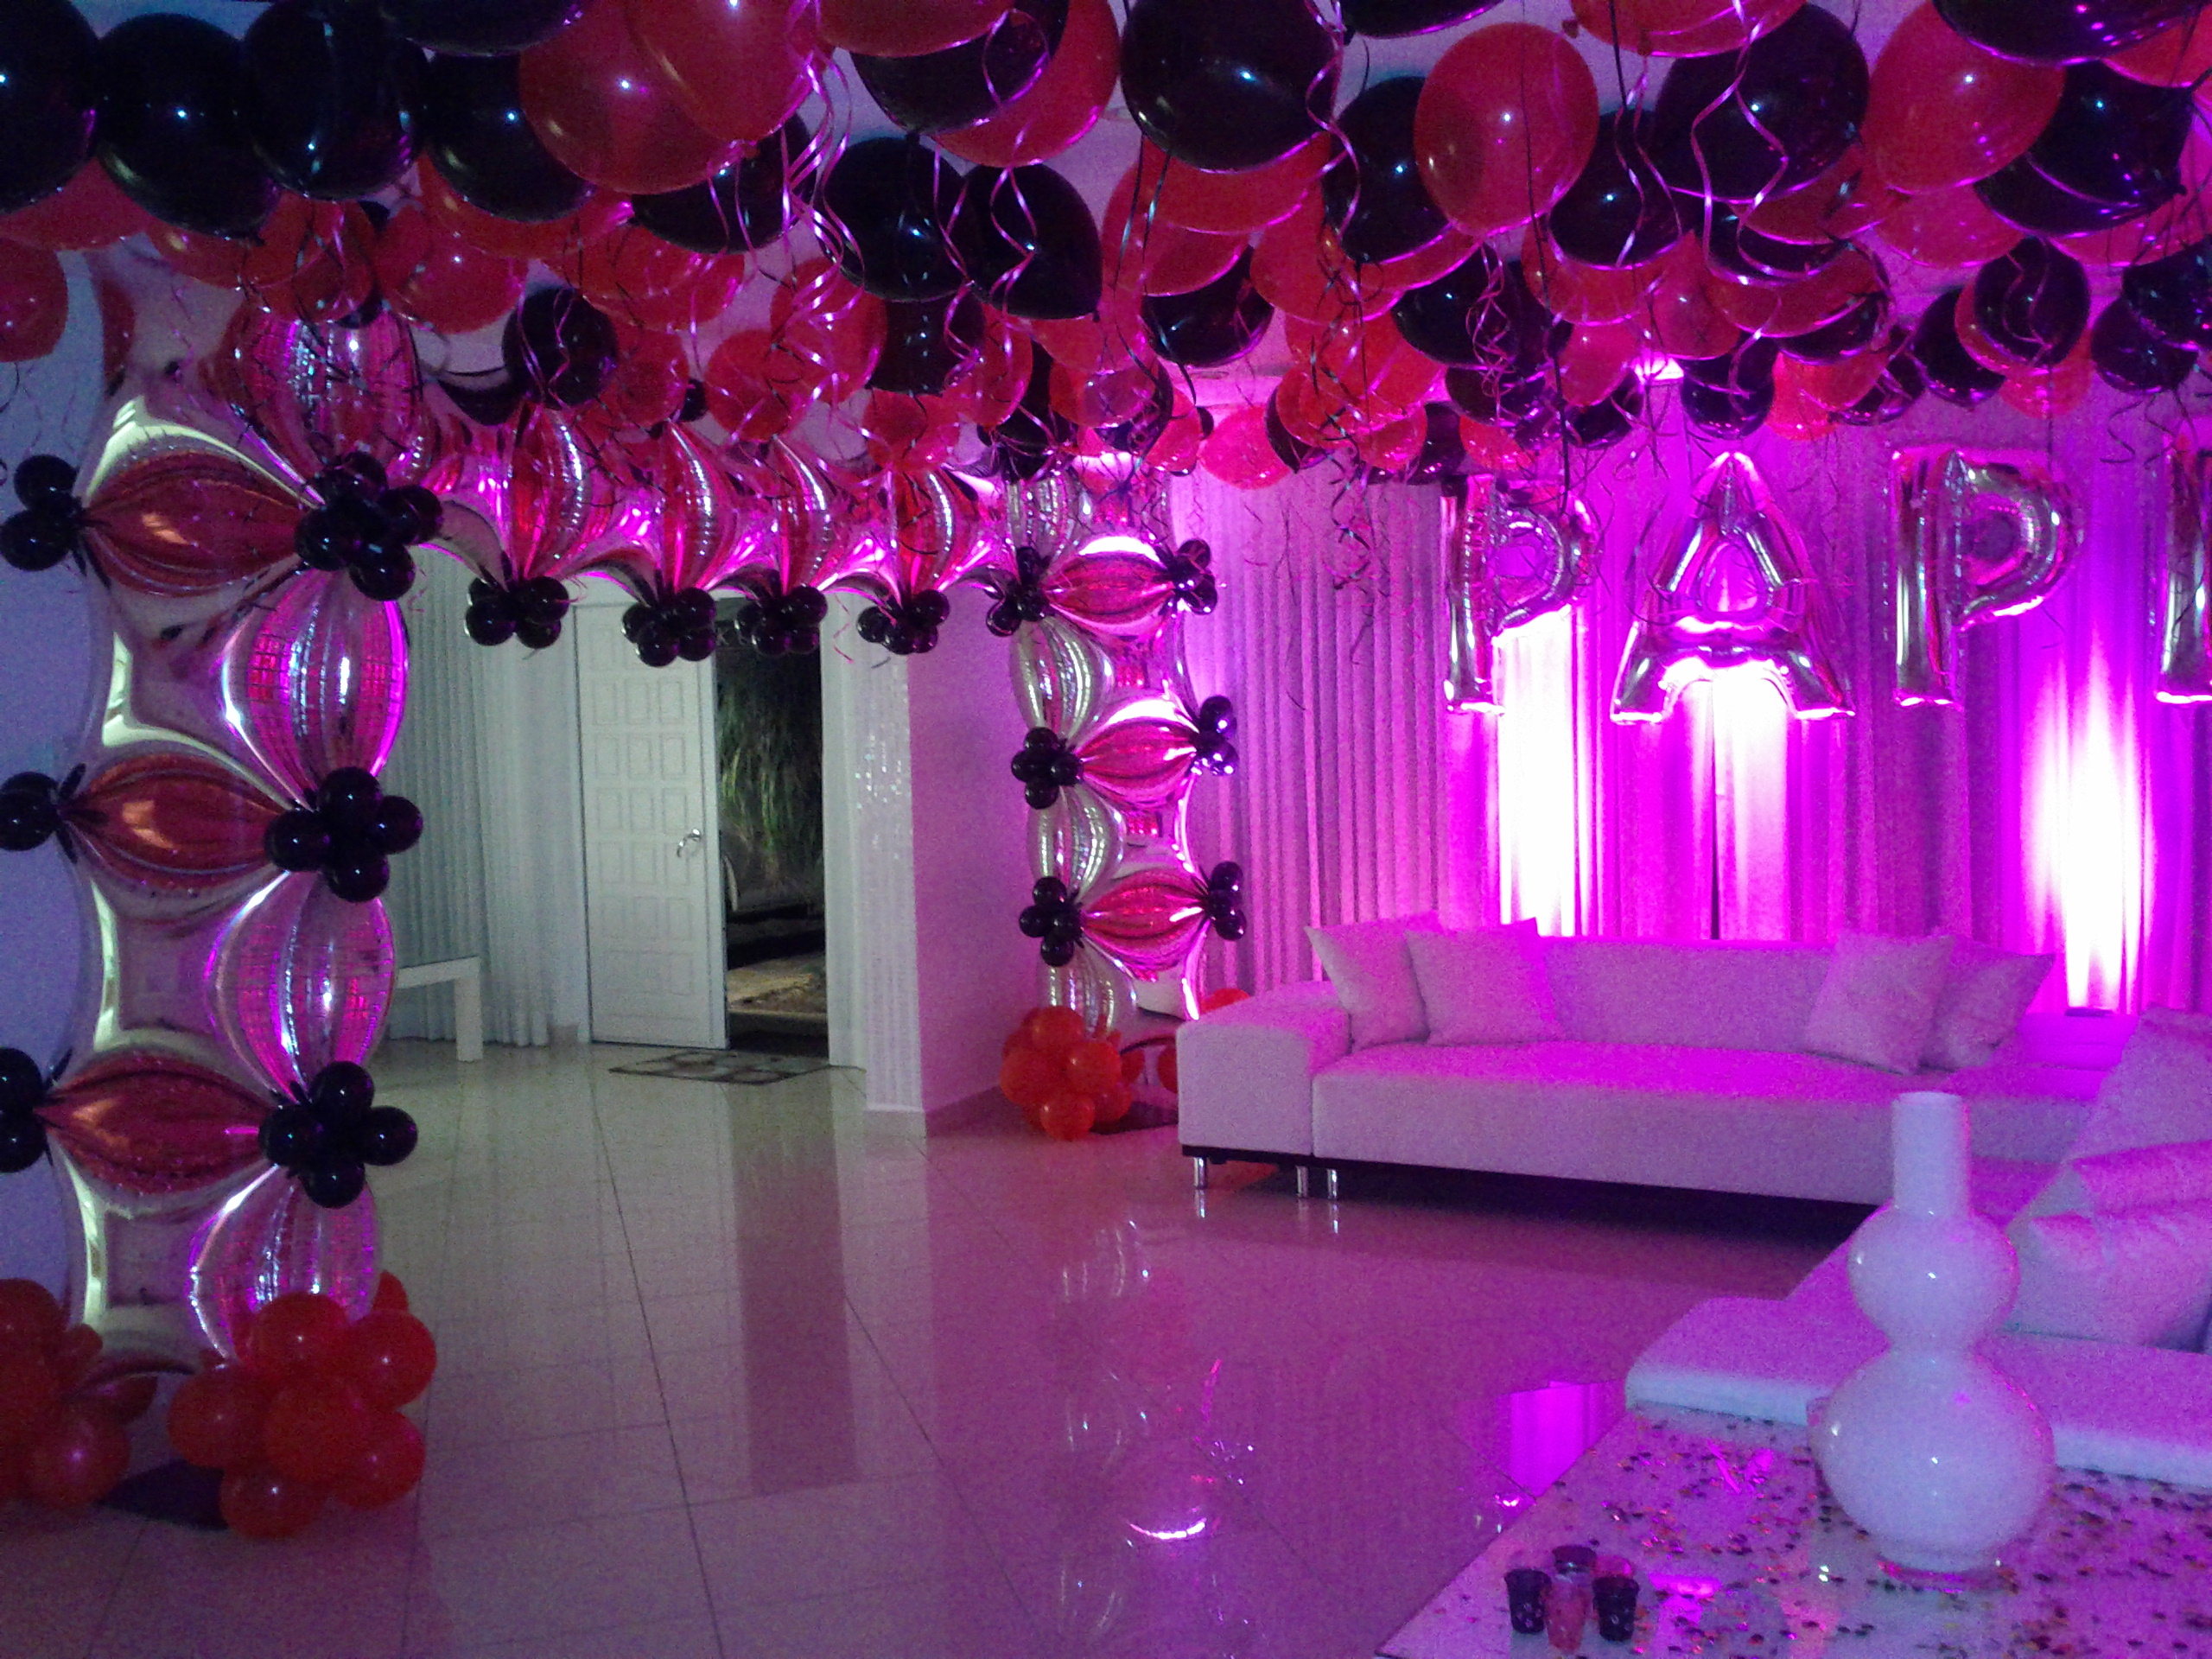 Pink and Black balloon arch